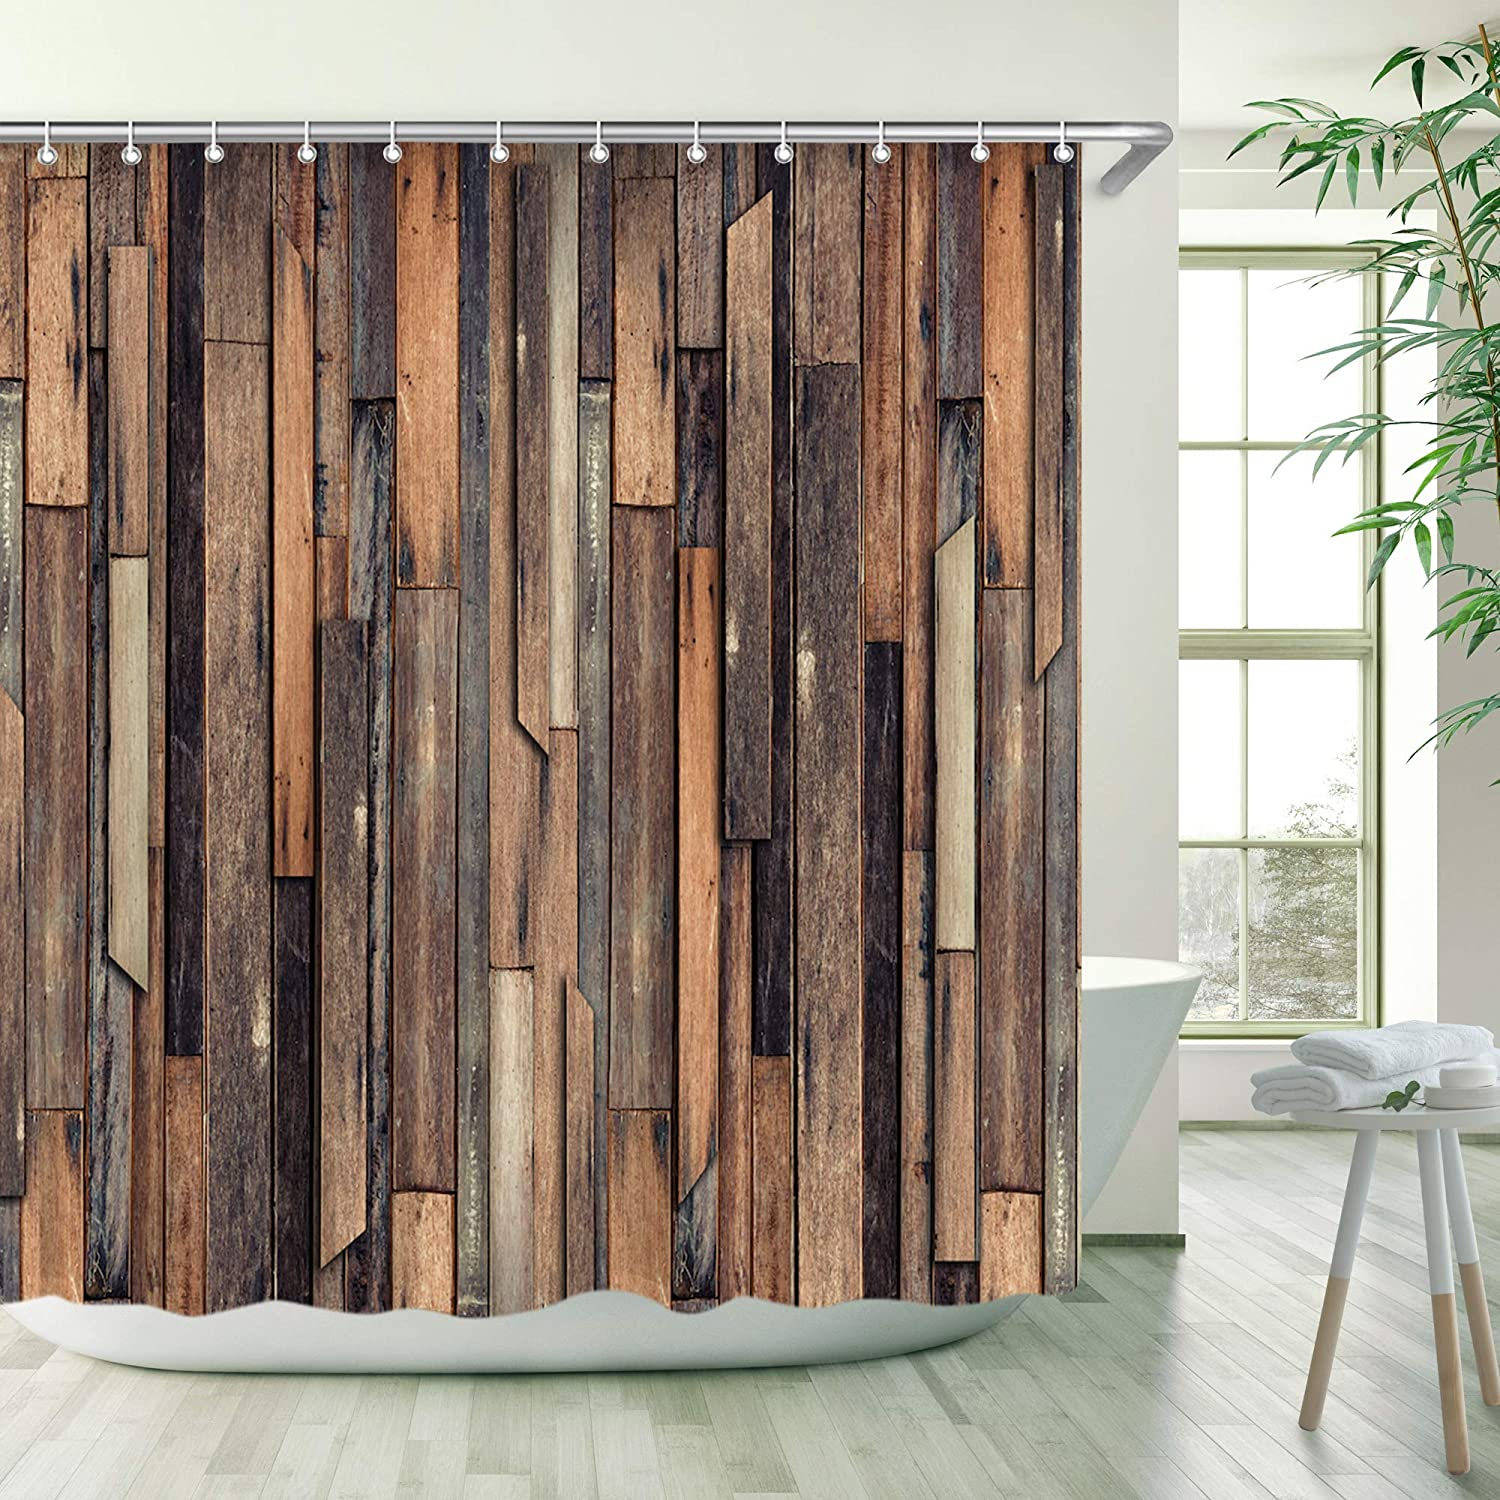 Stacy Fay Wooden Shower Curtain, Brown Old Hardwood Floor Planks Garage Fabric Bath Curtain Home Decoration with Hooks Rustic American Native Country Farm Style Artwork 72x72 Inches Machine Washable